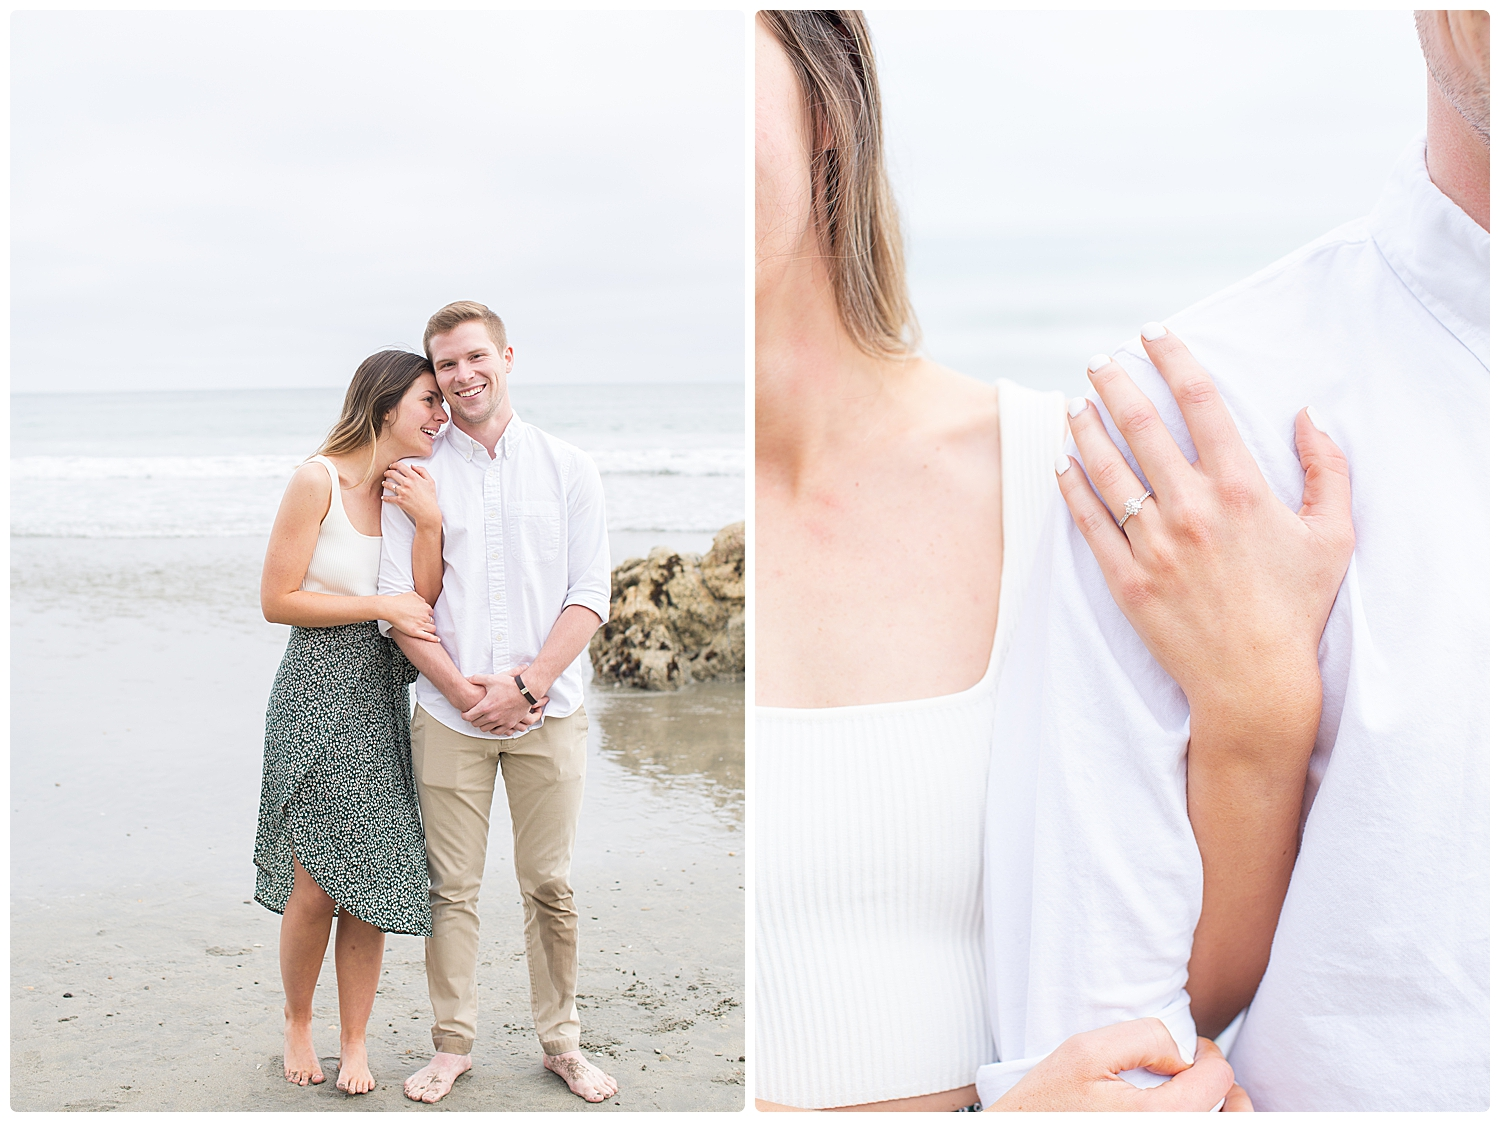 061919_EthanEmma_proposal_Renoda Campbell Photography-7292.jpg